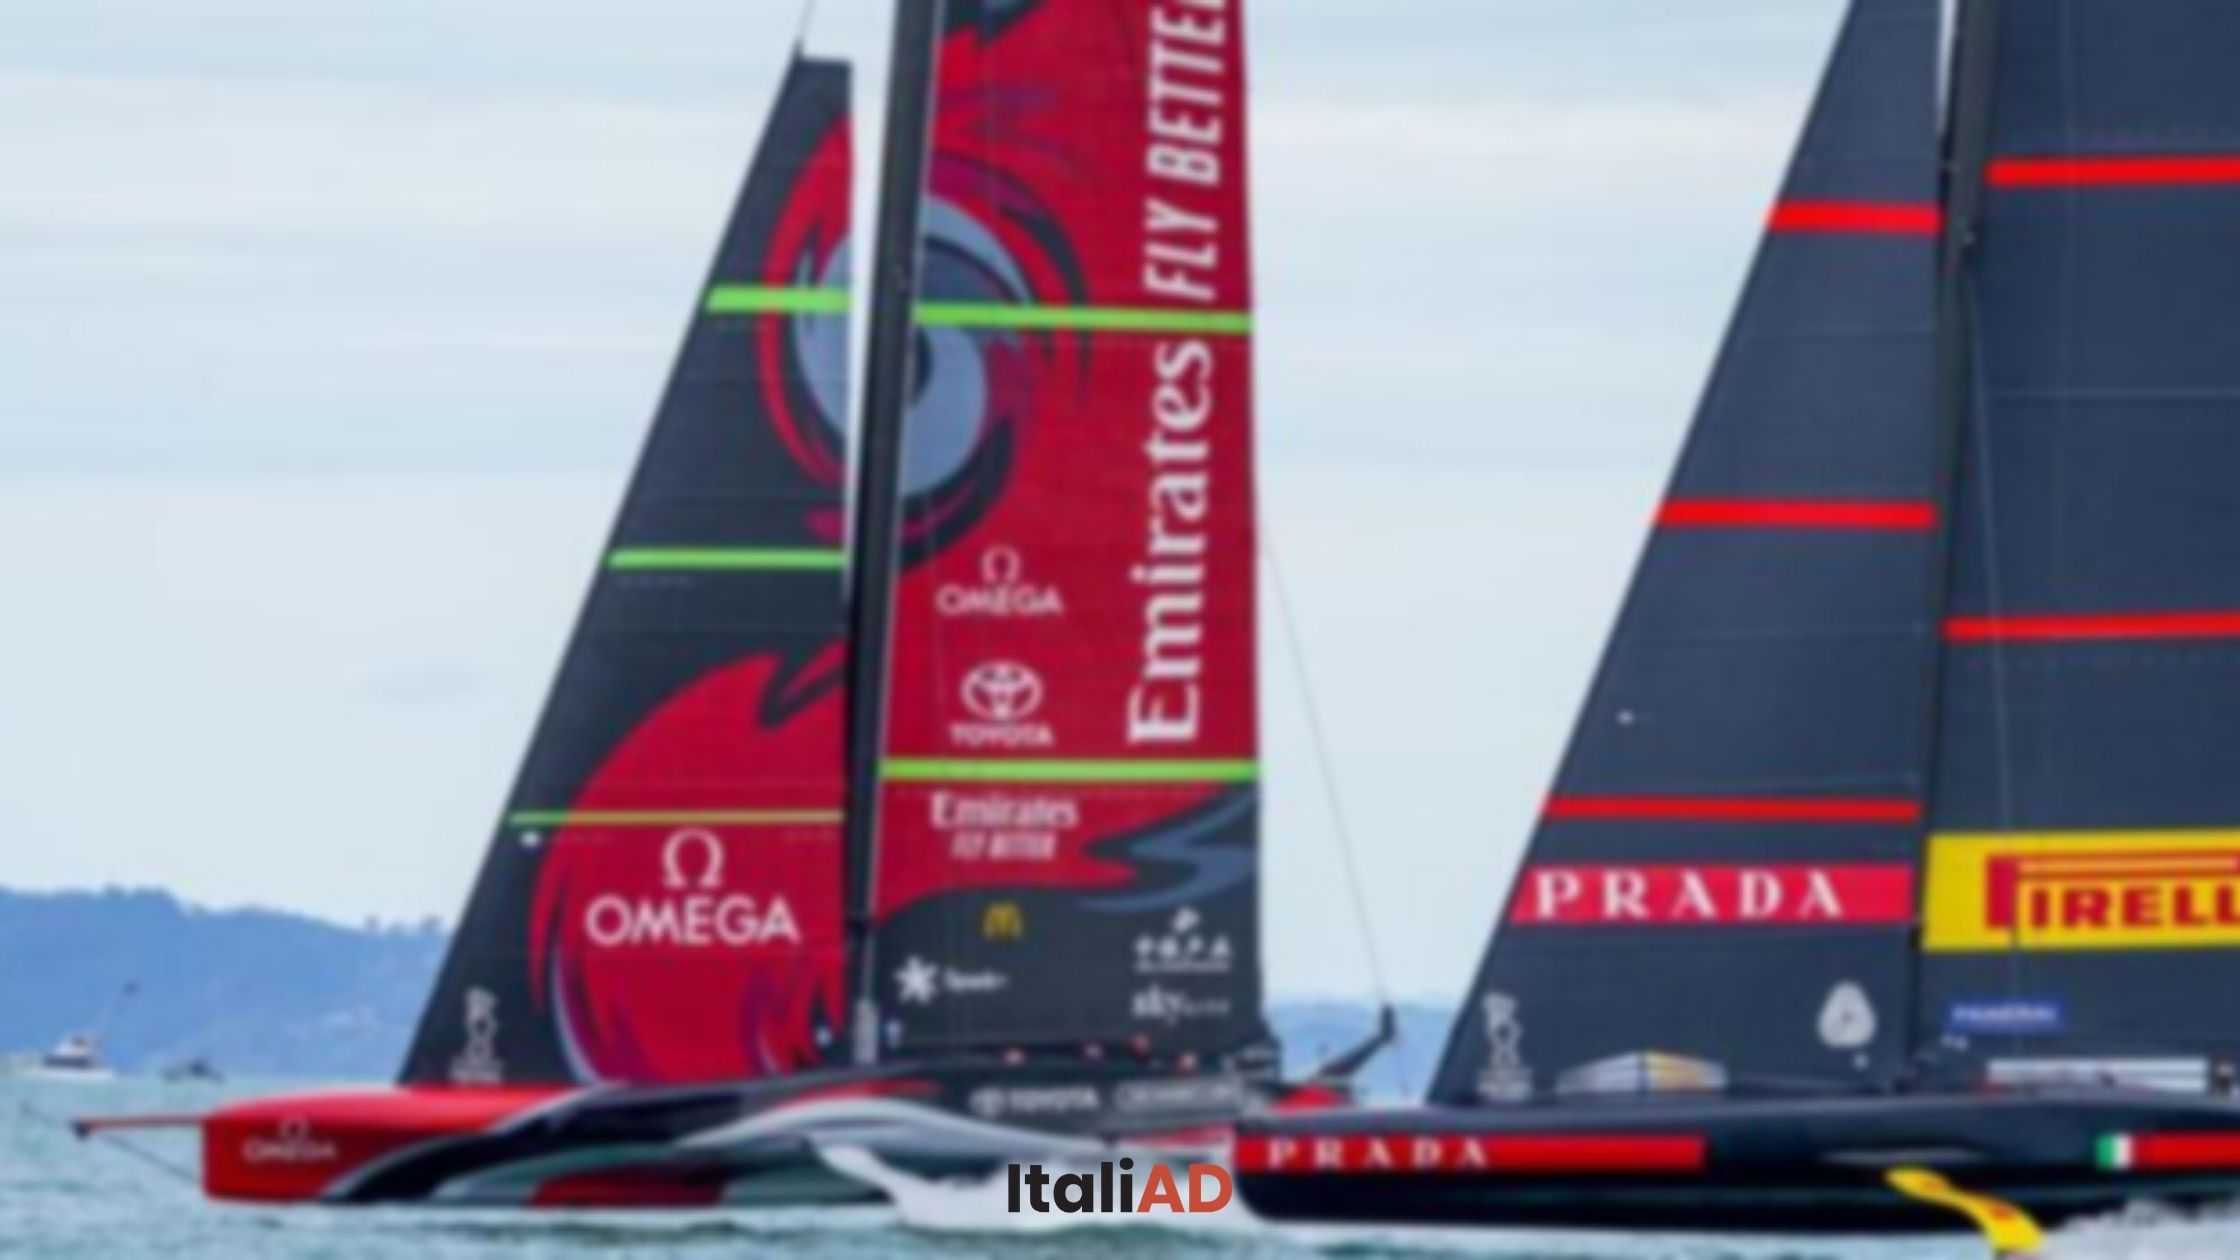 Il marketing e la comunicazione dell'America's Cup